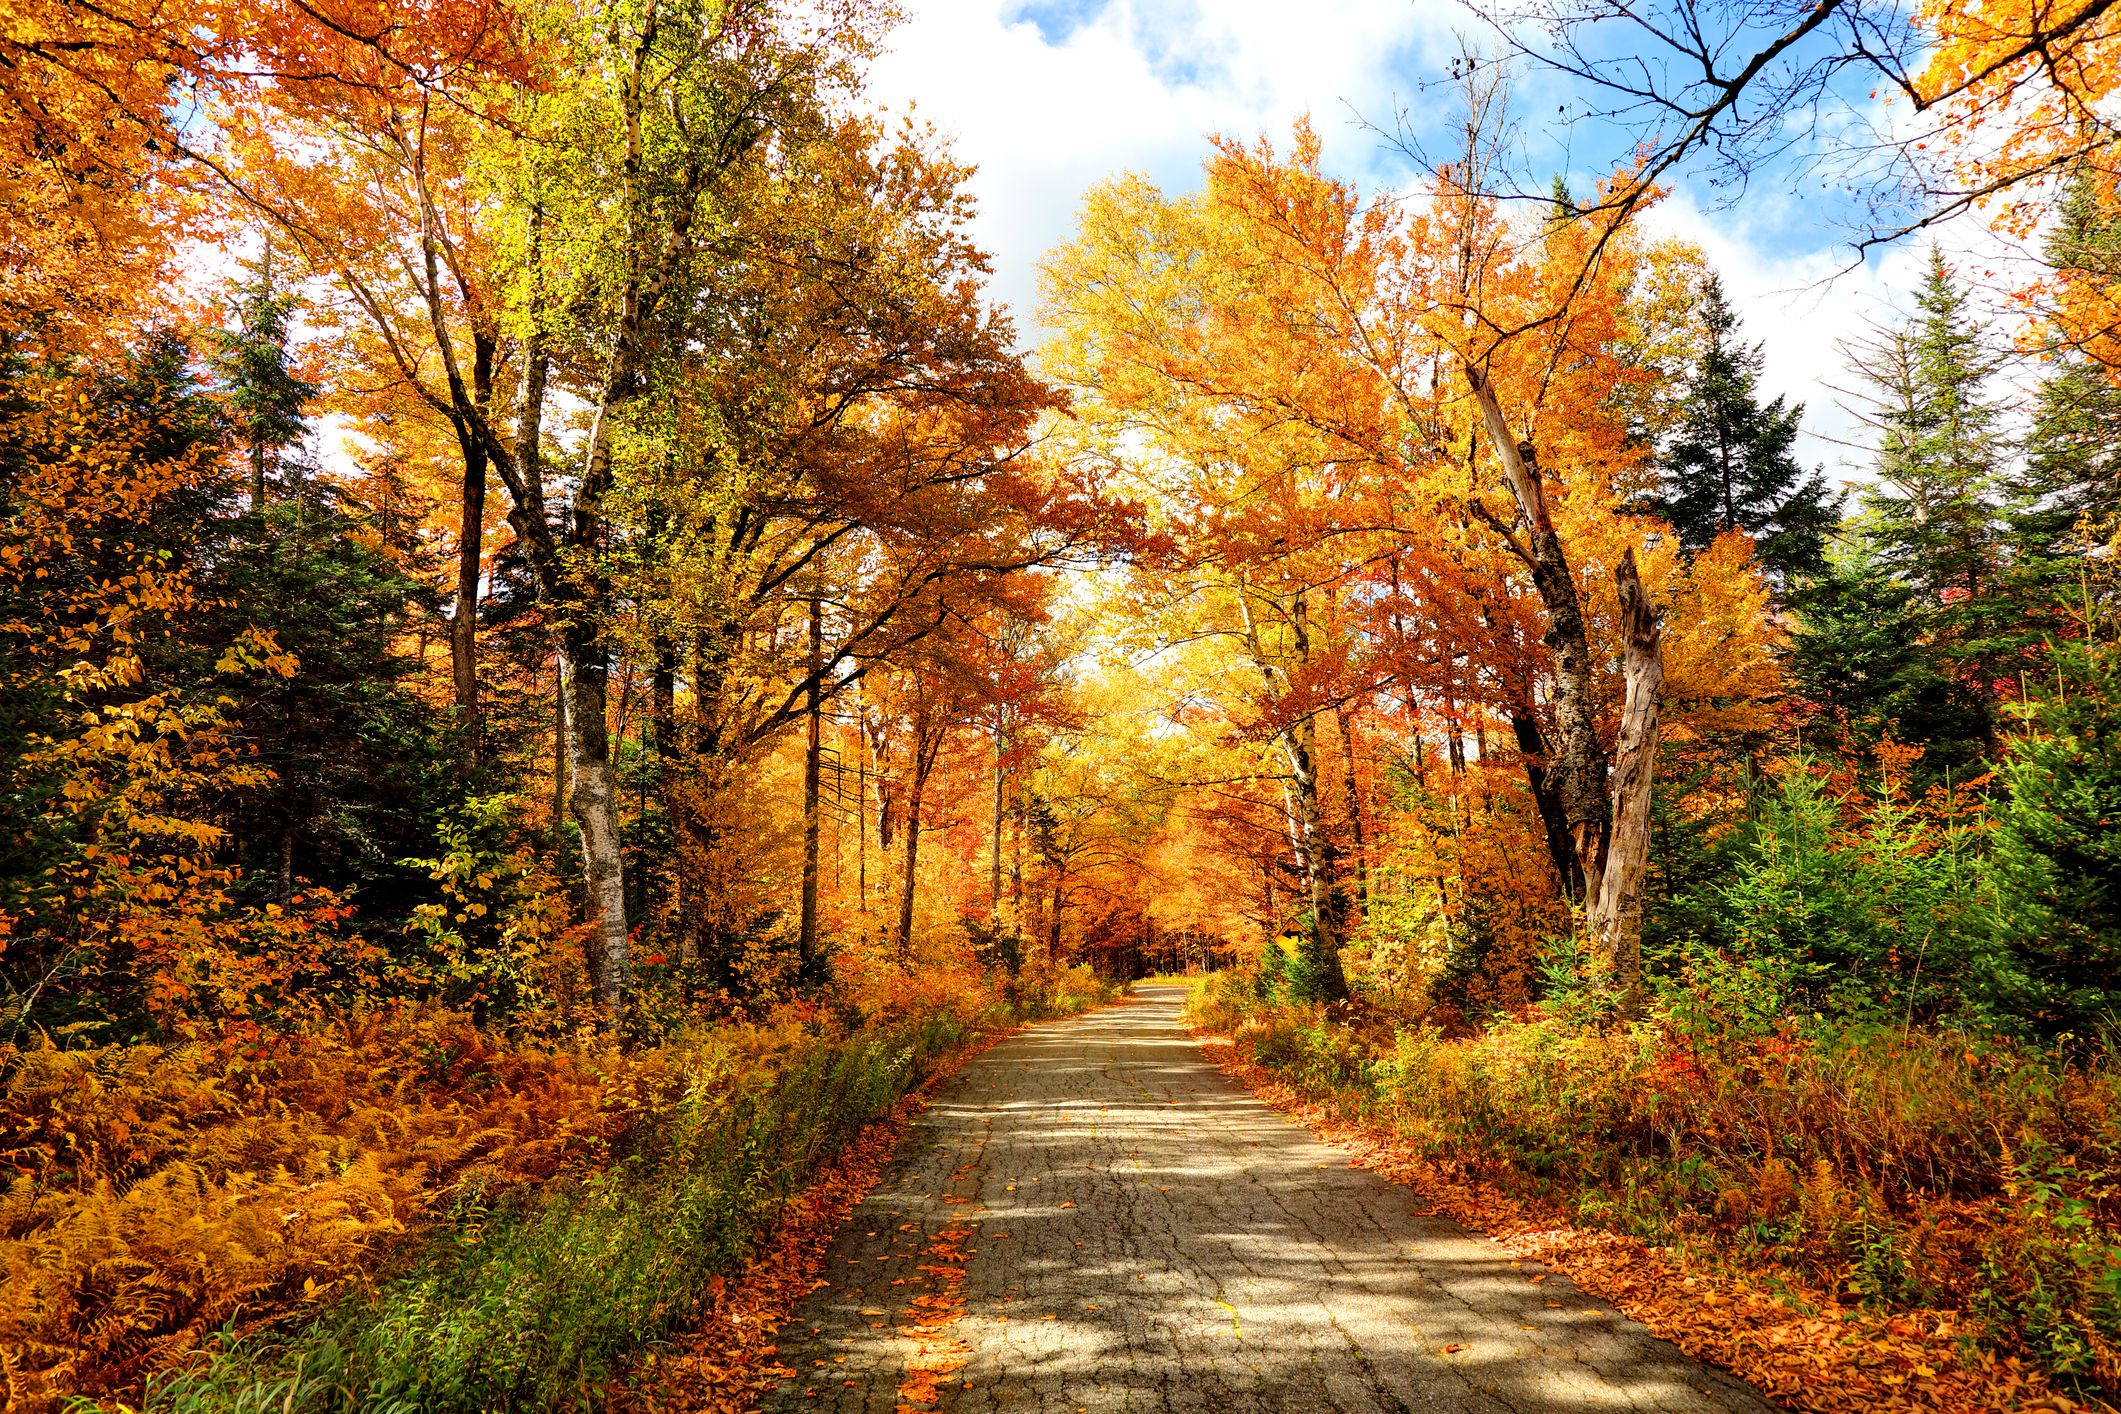 Experts From The Weather Channel Say This Year's Fall Foliage Season Will Be Delayed